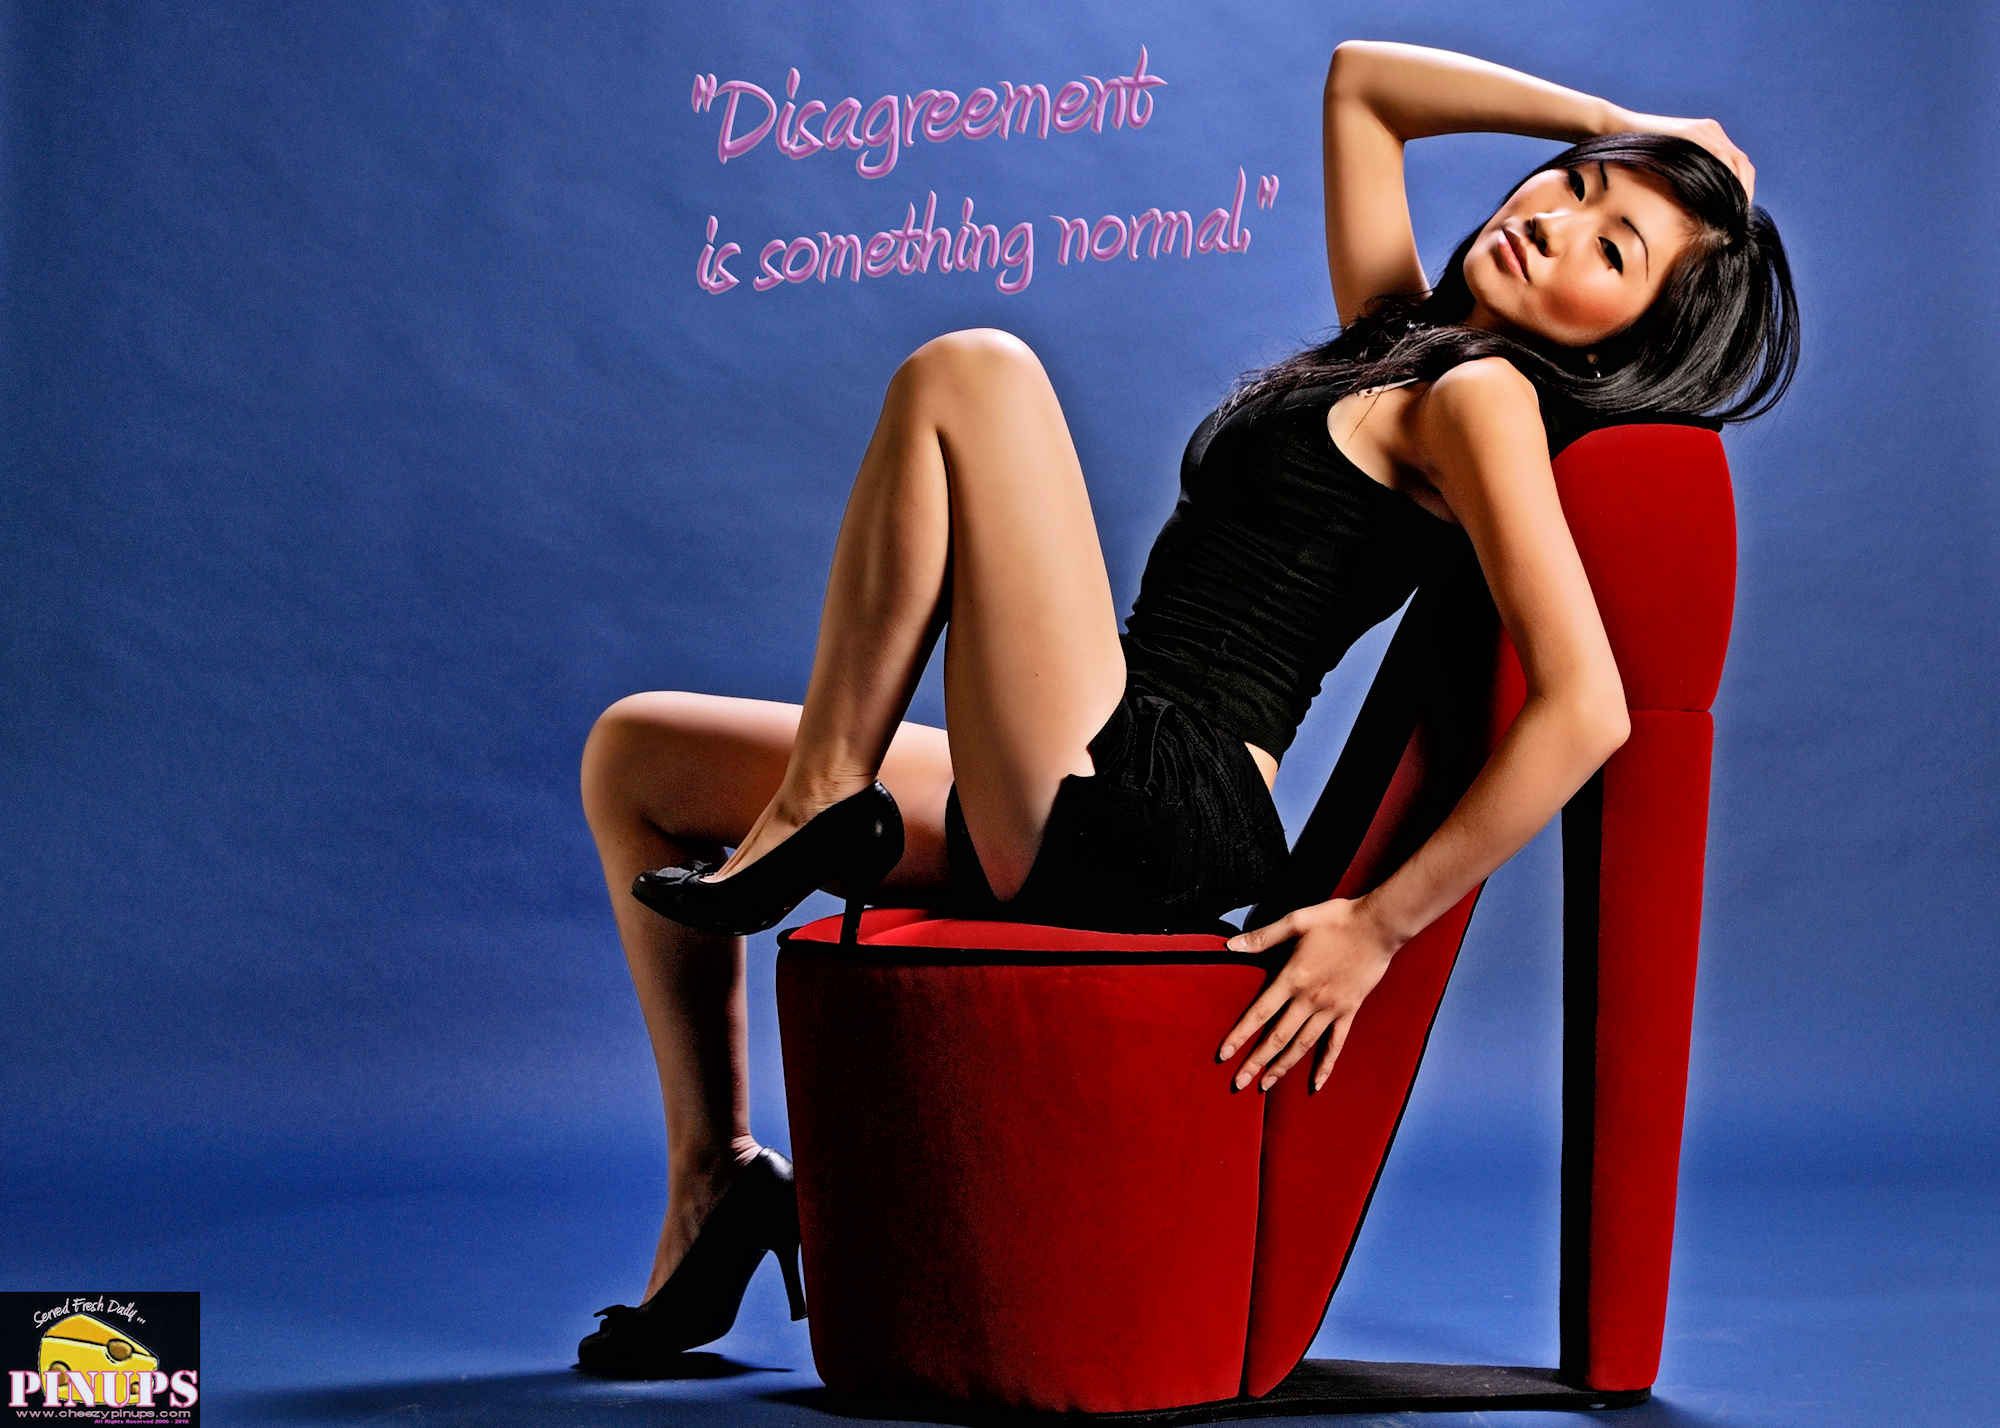 """Cheezy Pinup - July 6, 2018   """"Disagreement is something normal."""" - @DalaiLama Model : Kim"""